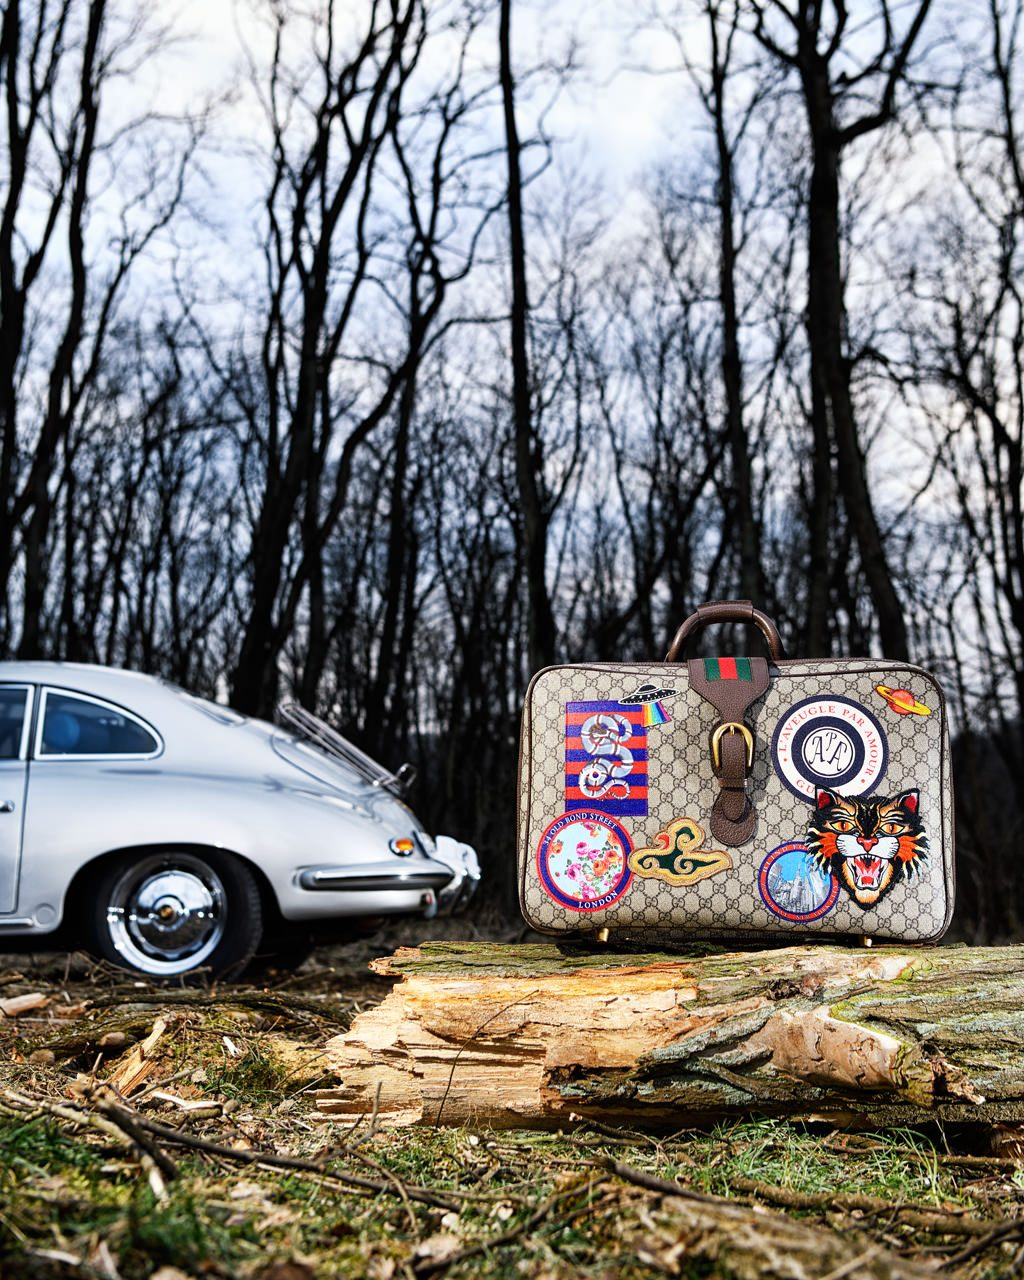 Sabine-Scheer-stilllife-porsche356-gucci-editorialphotography